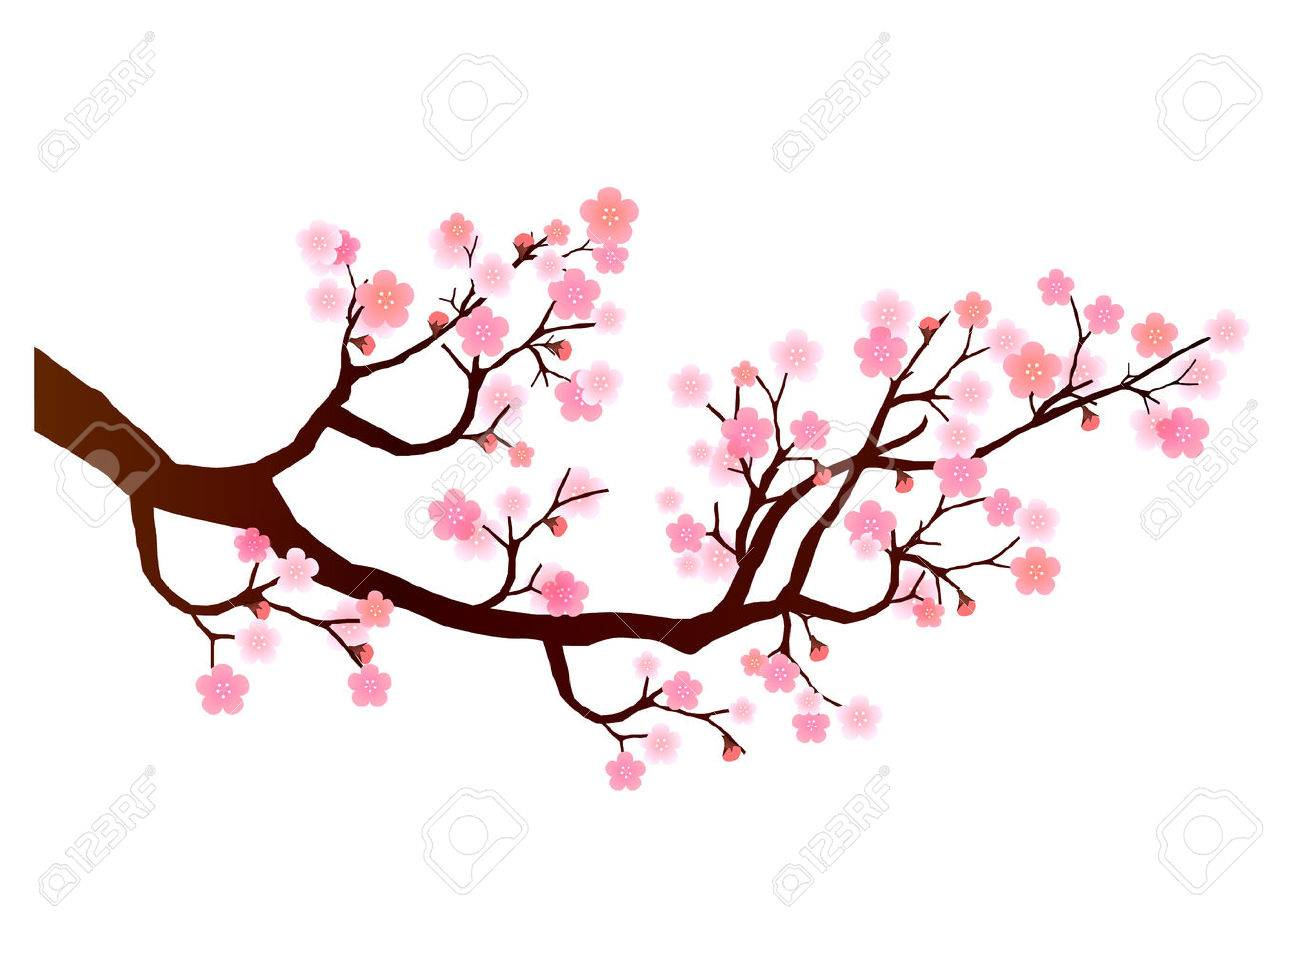 Plum flower icon royalty free cliparts vectors and stock plum flower icon stock vector 47164543 dhlflorist Images